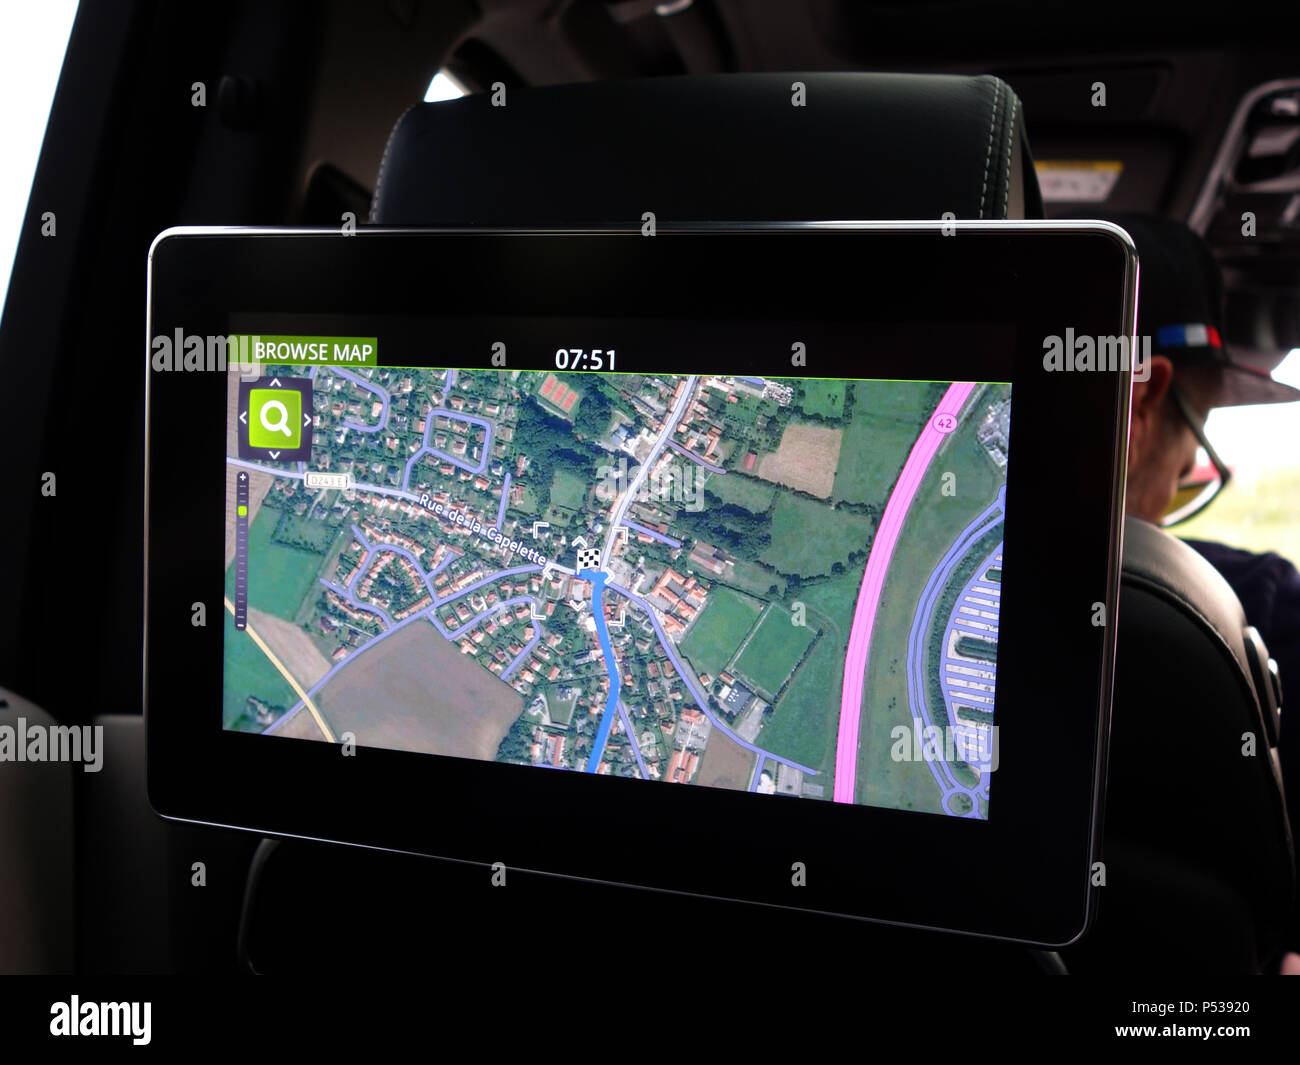 Rear seating individual TV Monitor and entertainment system with Sat Nav route showing live infomation for the rear seated passenger on route - Stock Image